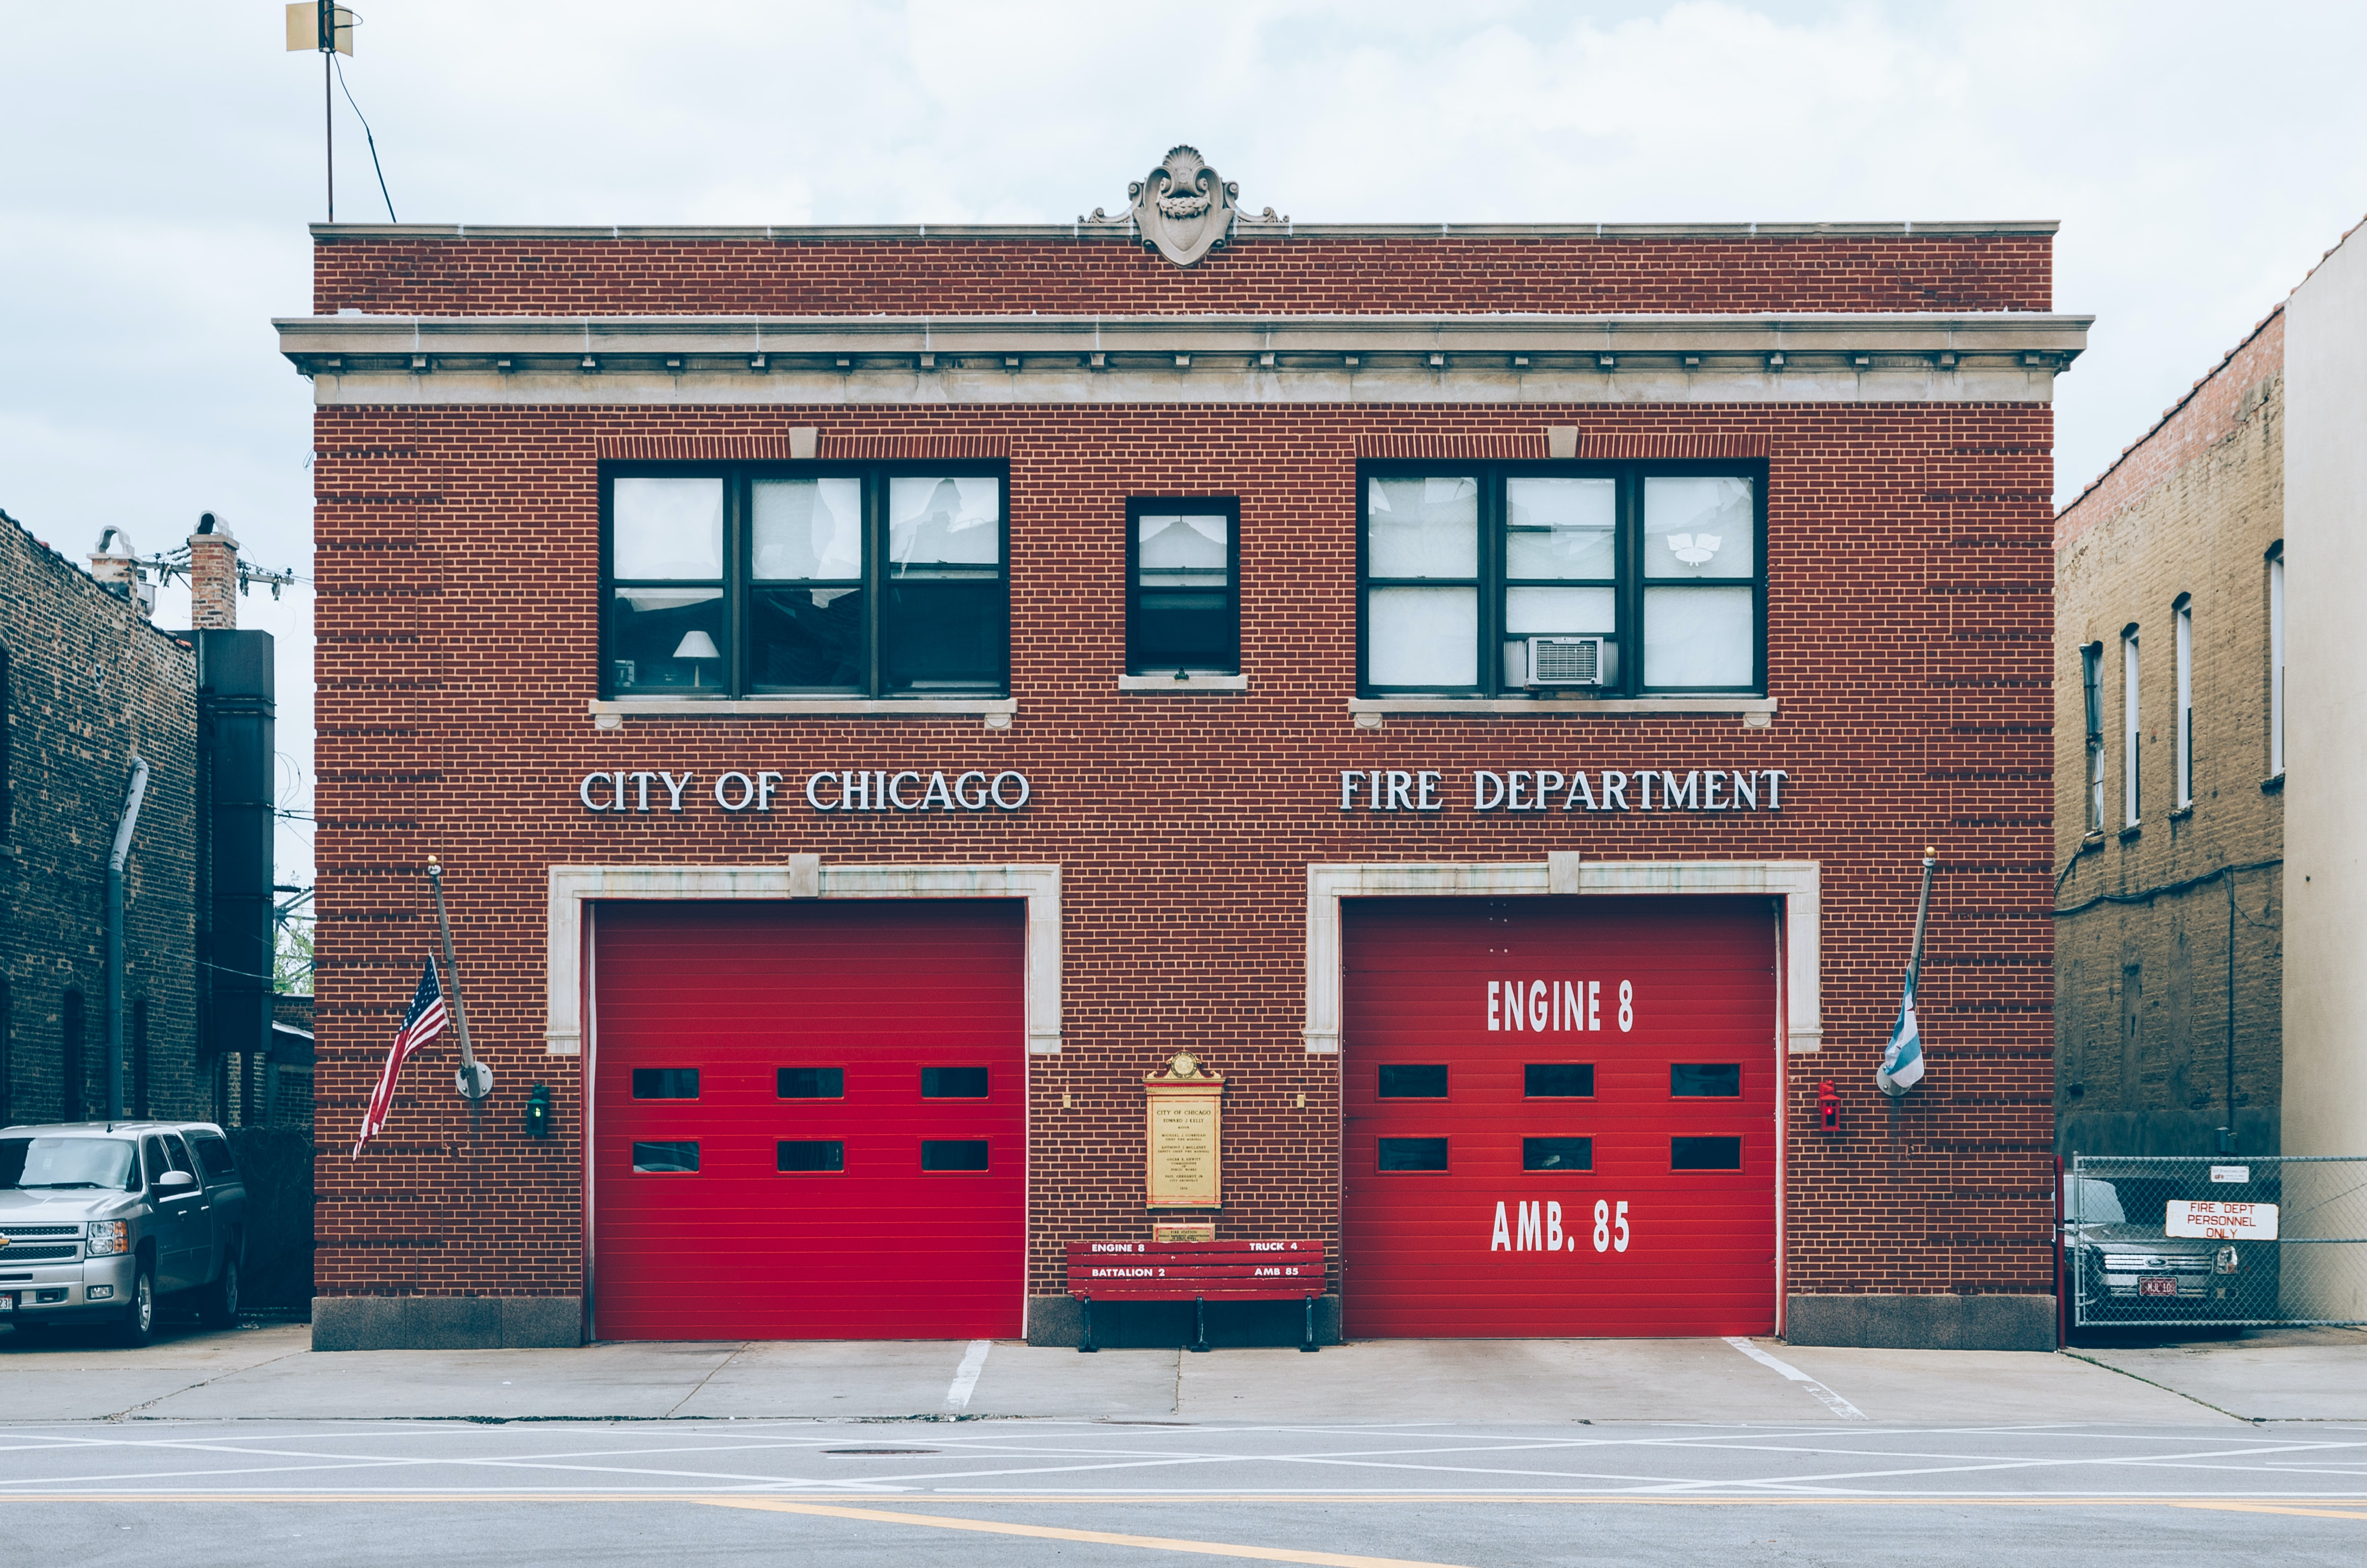 City of Chicago Fire Department at daytime